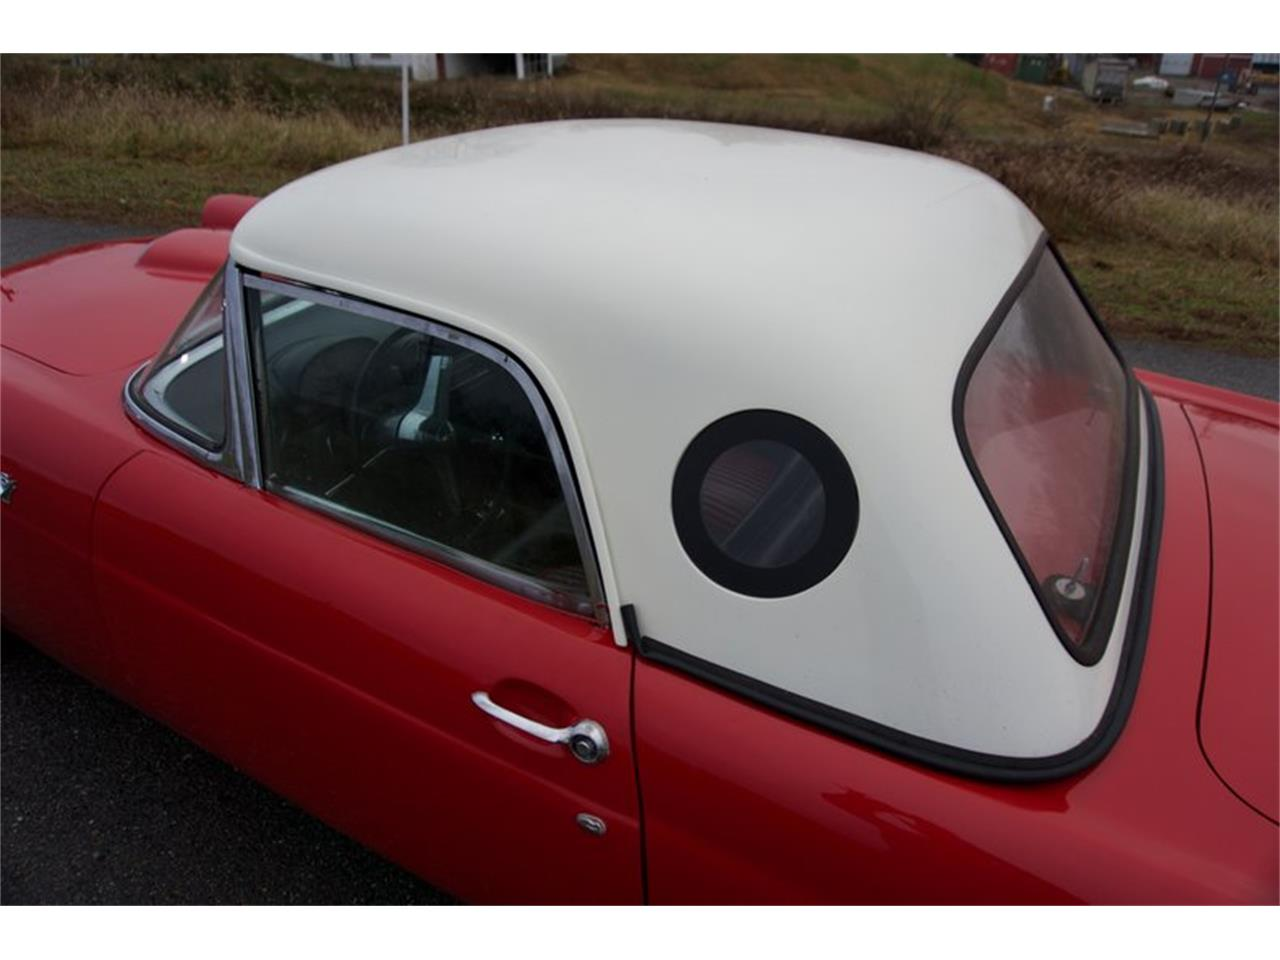 Large Picture of 1955 Ford Thunderbird Auction Vehicle Offered by GAA Classic Cars Auctions - PDHS